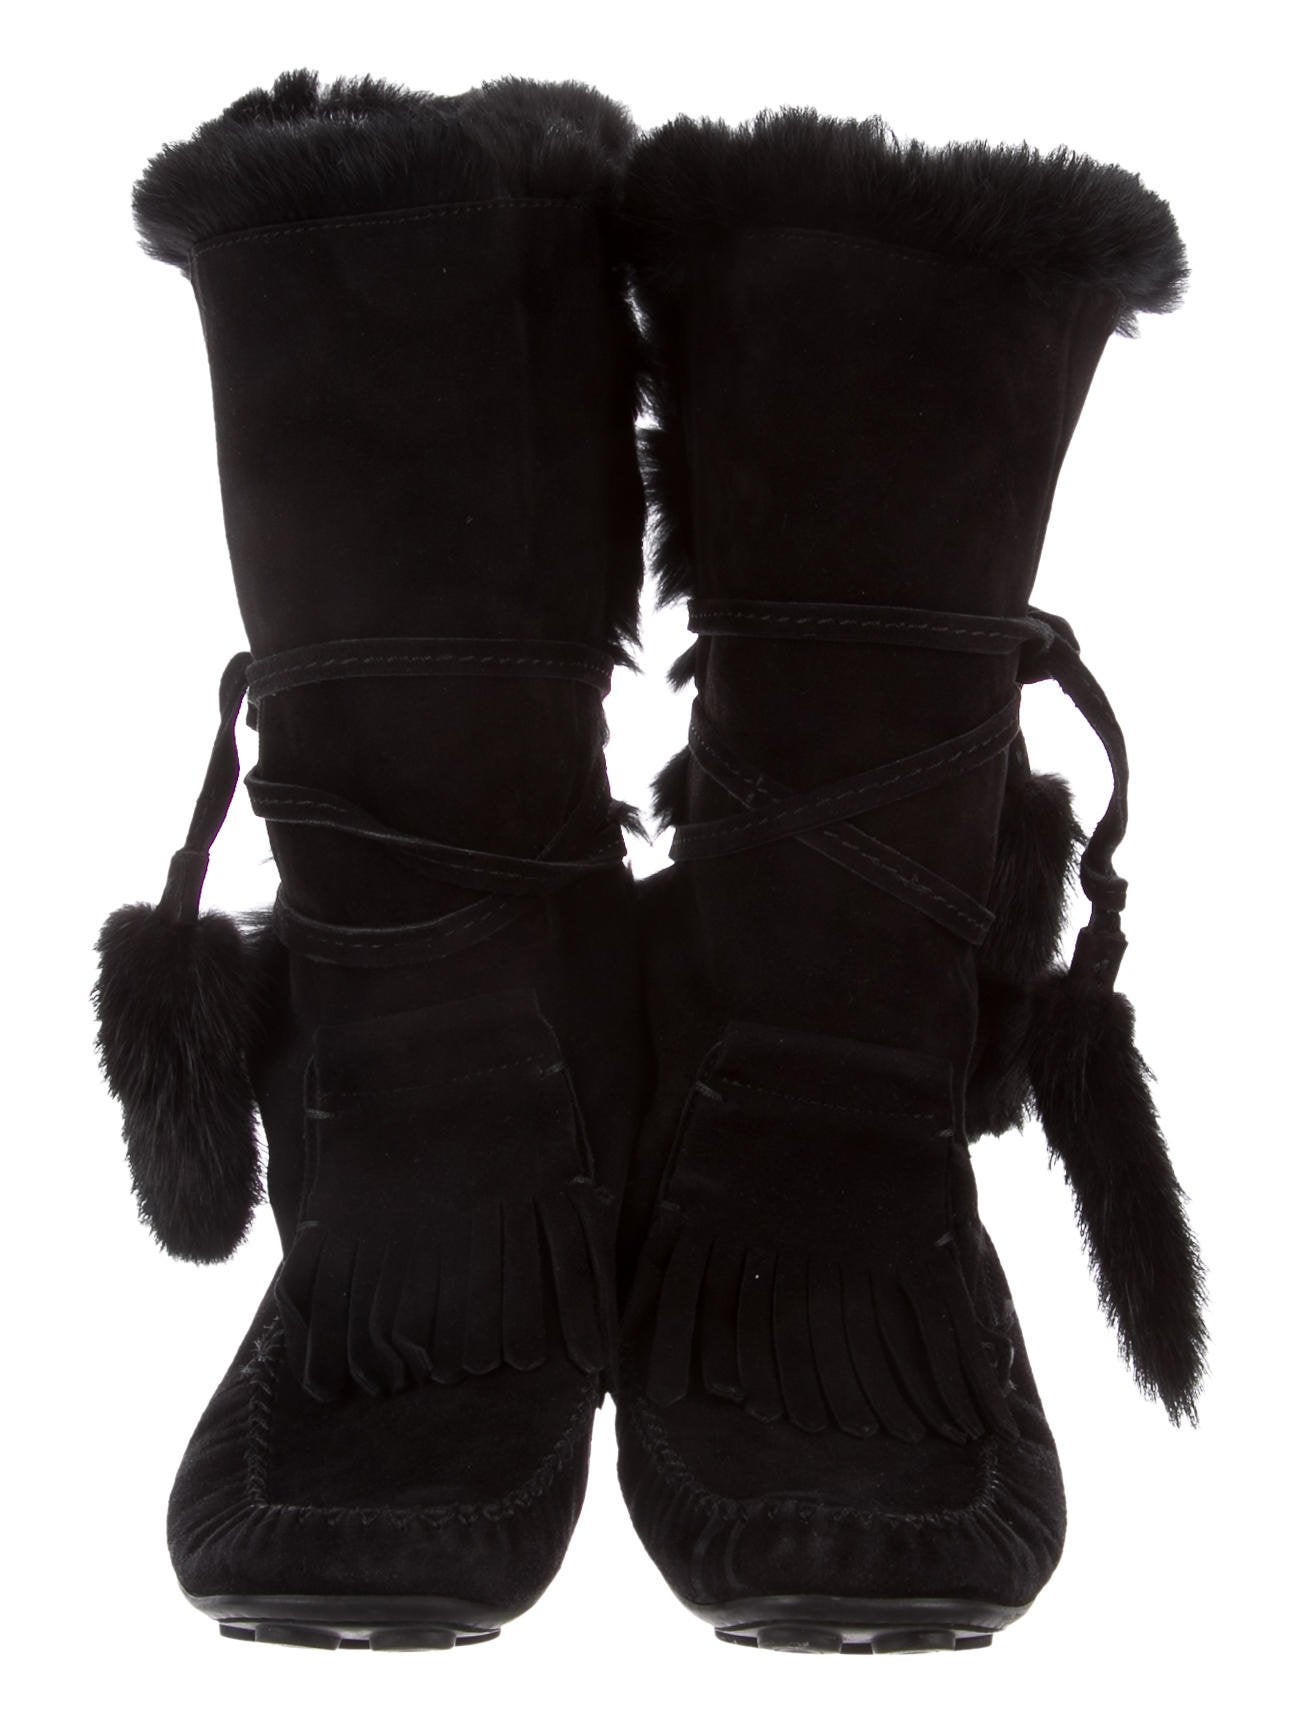 outlet best wholesale view for sale Yves Saint Laurent Fur-Lined Moccasin Boots real for sale XzNgIey